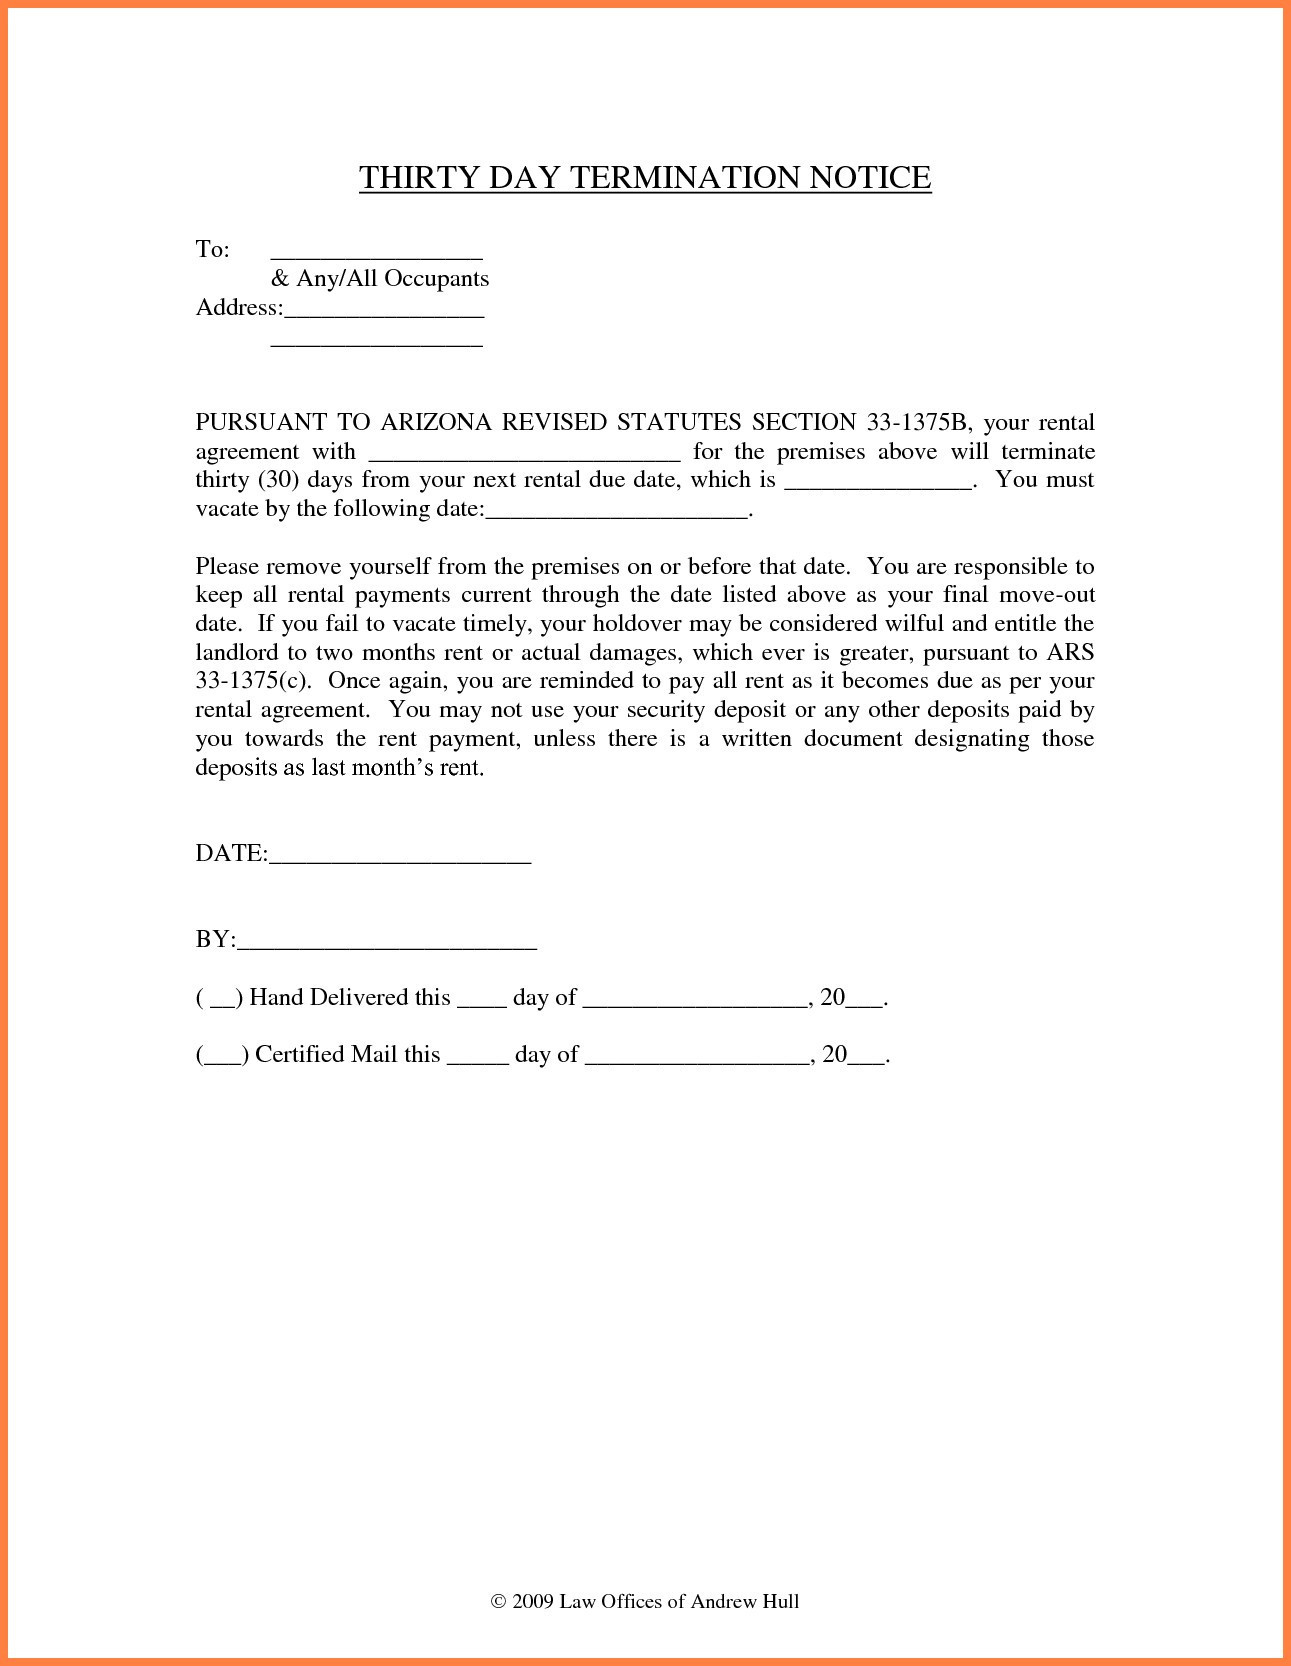 Notice to Vacate Letter to Tenant Template - Notice to Vacate Letter to Tenant Template Best Termination